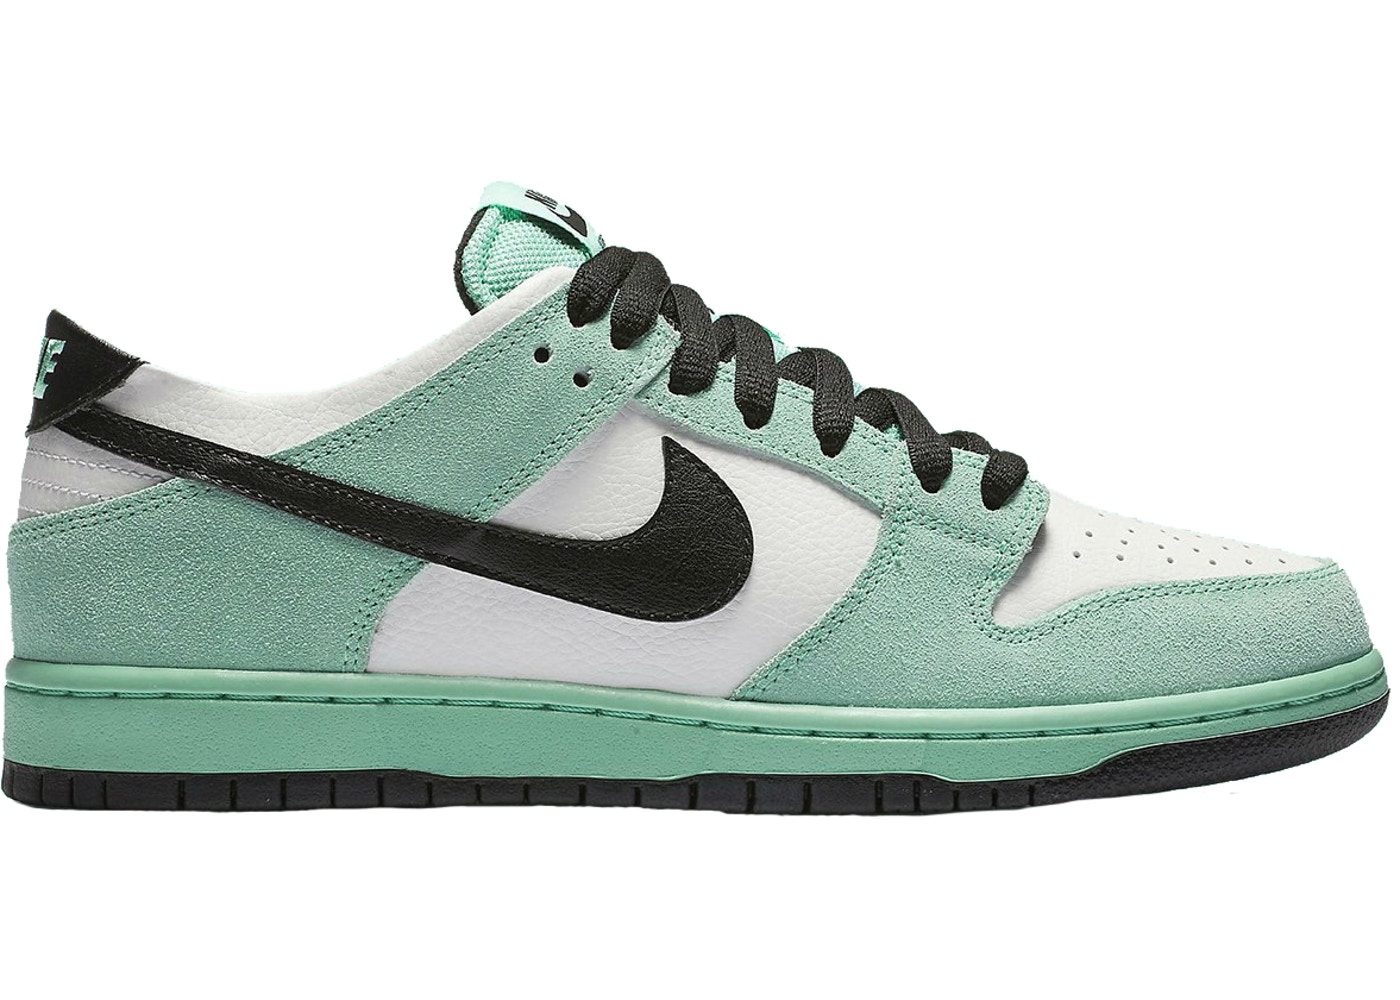 70688fb7fd0c Nike Dunk SB Low Sea Crystal - 819674-301